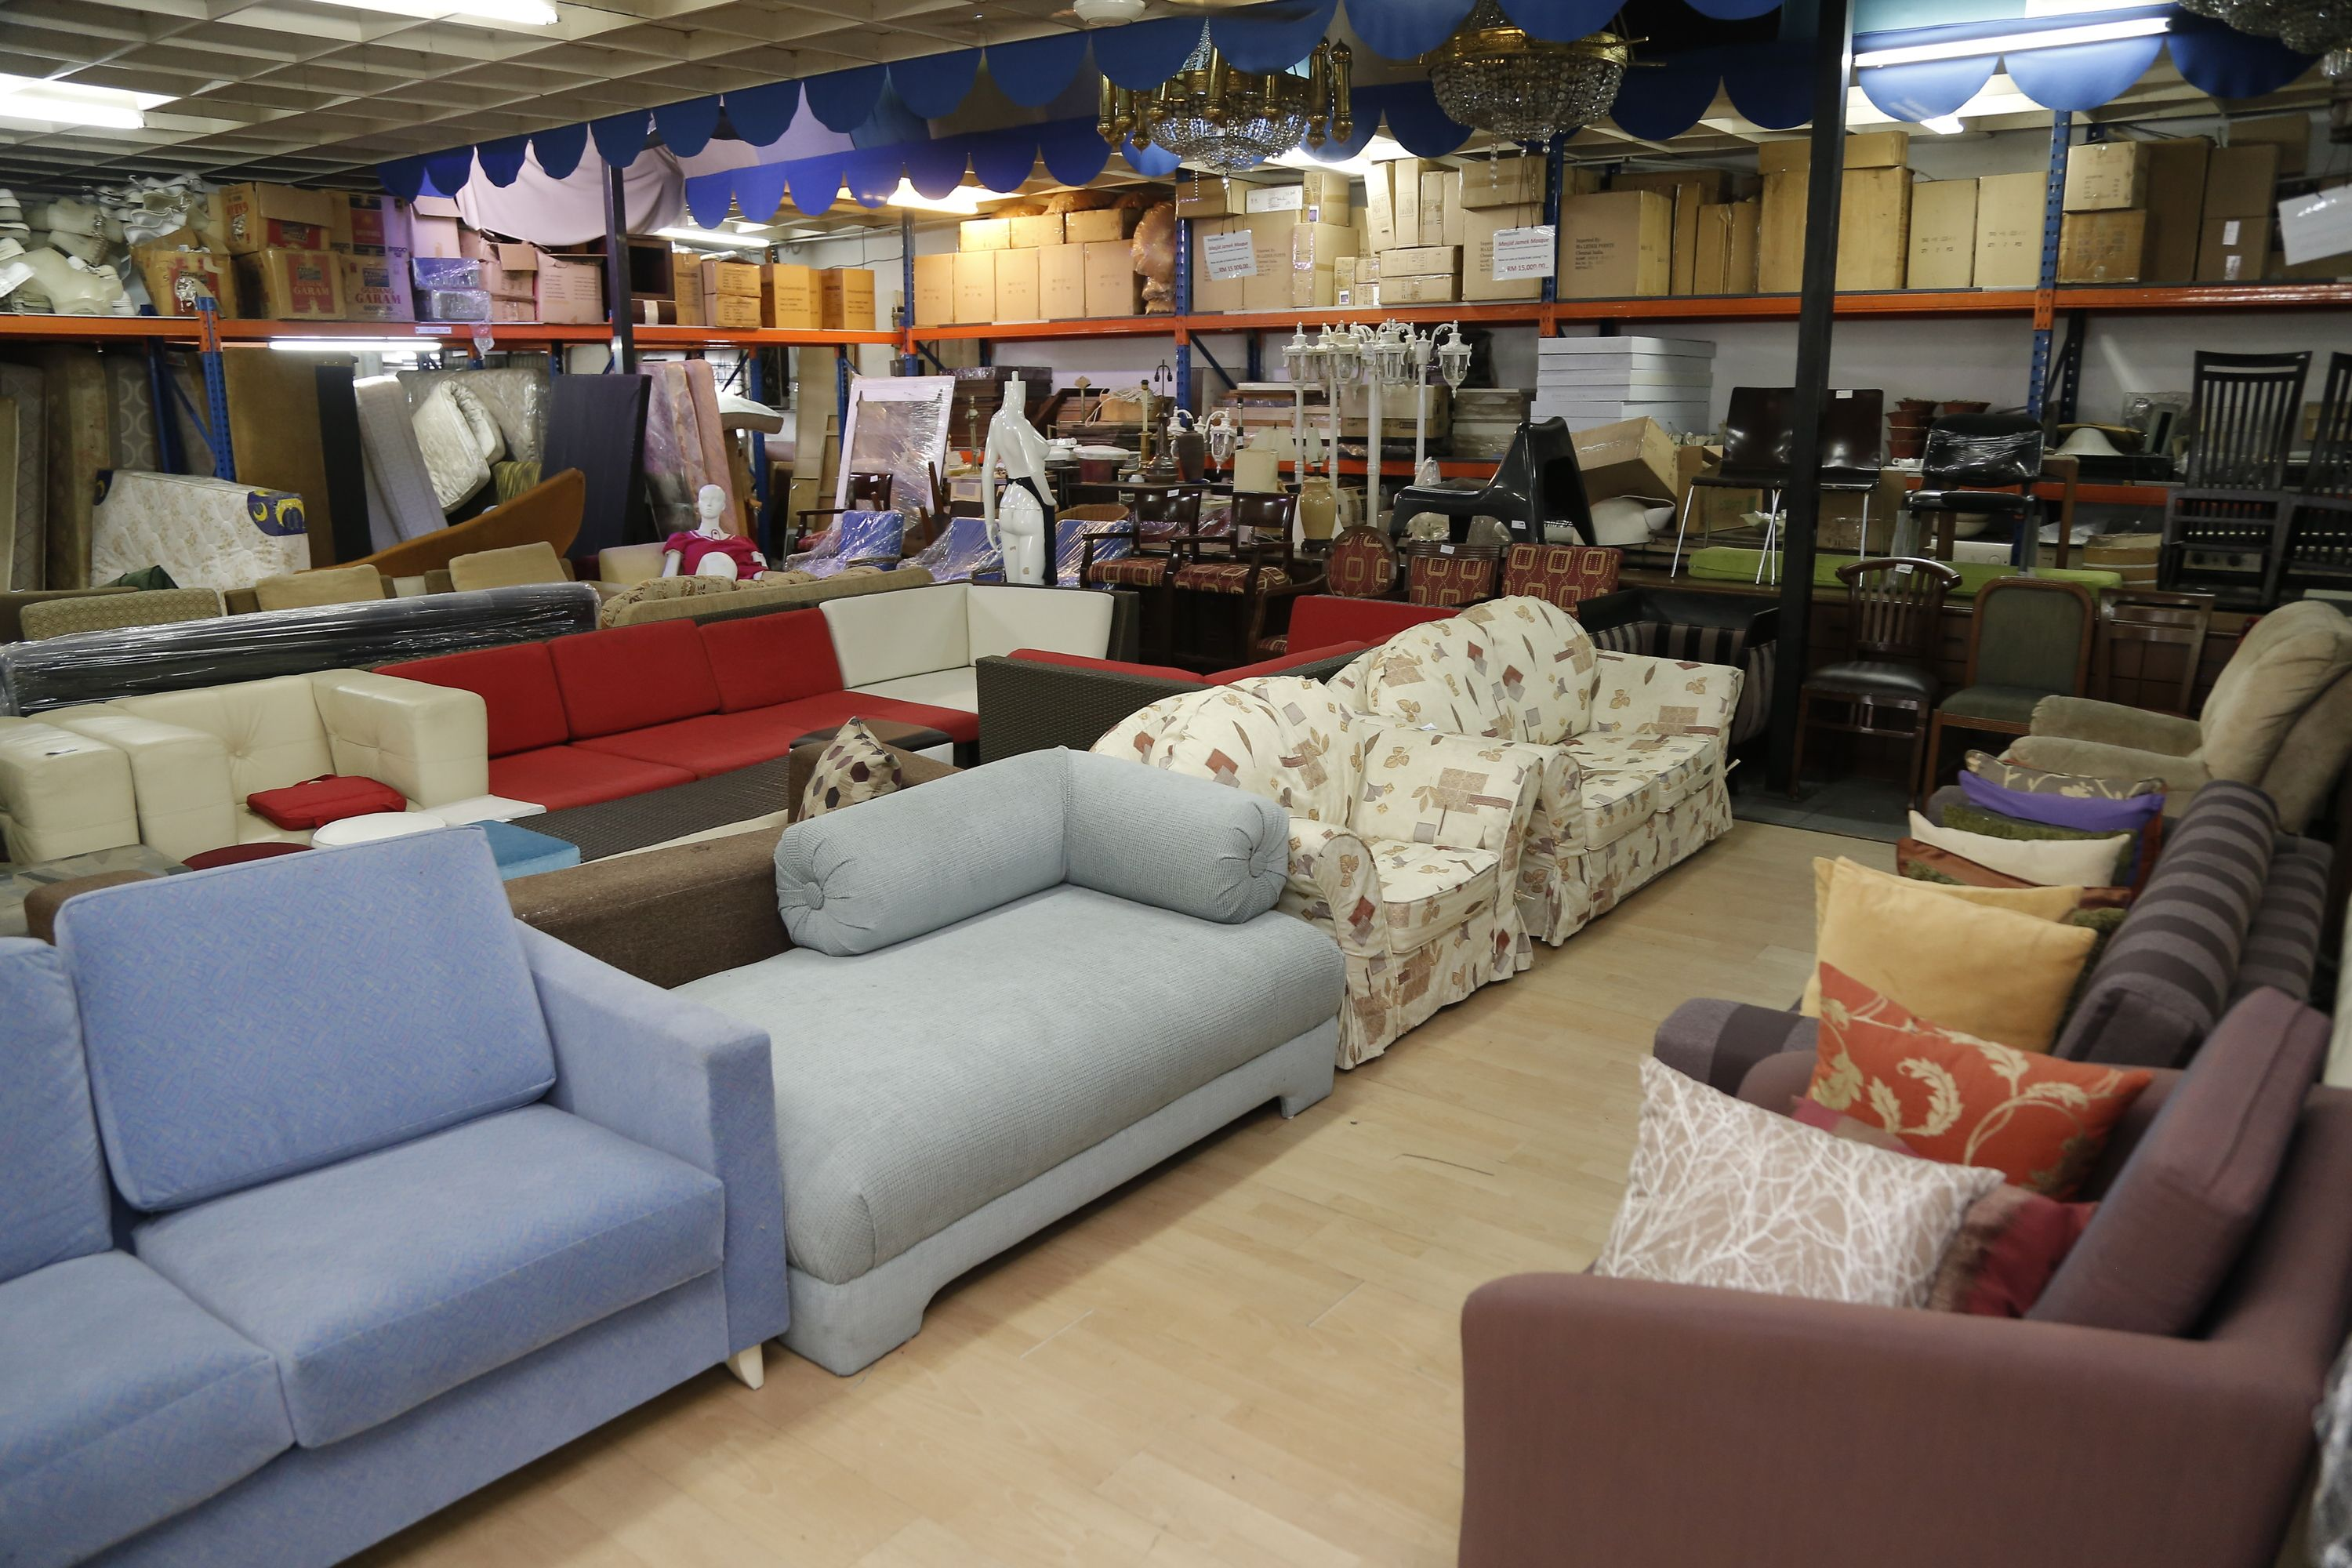 Groovy The Best Secondhand Furniture Shops In Kl Moving To Download Free Architecture Designs Sospemadebymaigaardcom